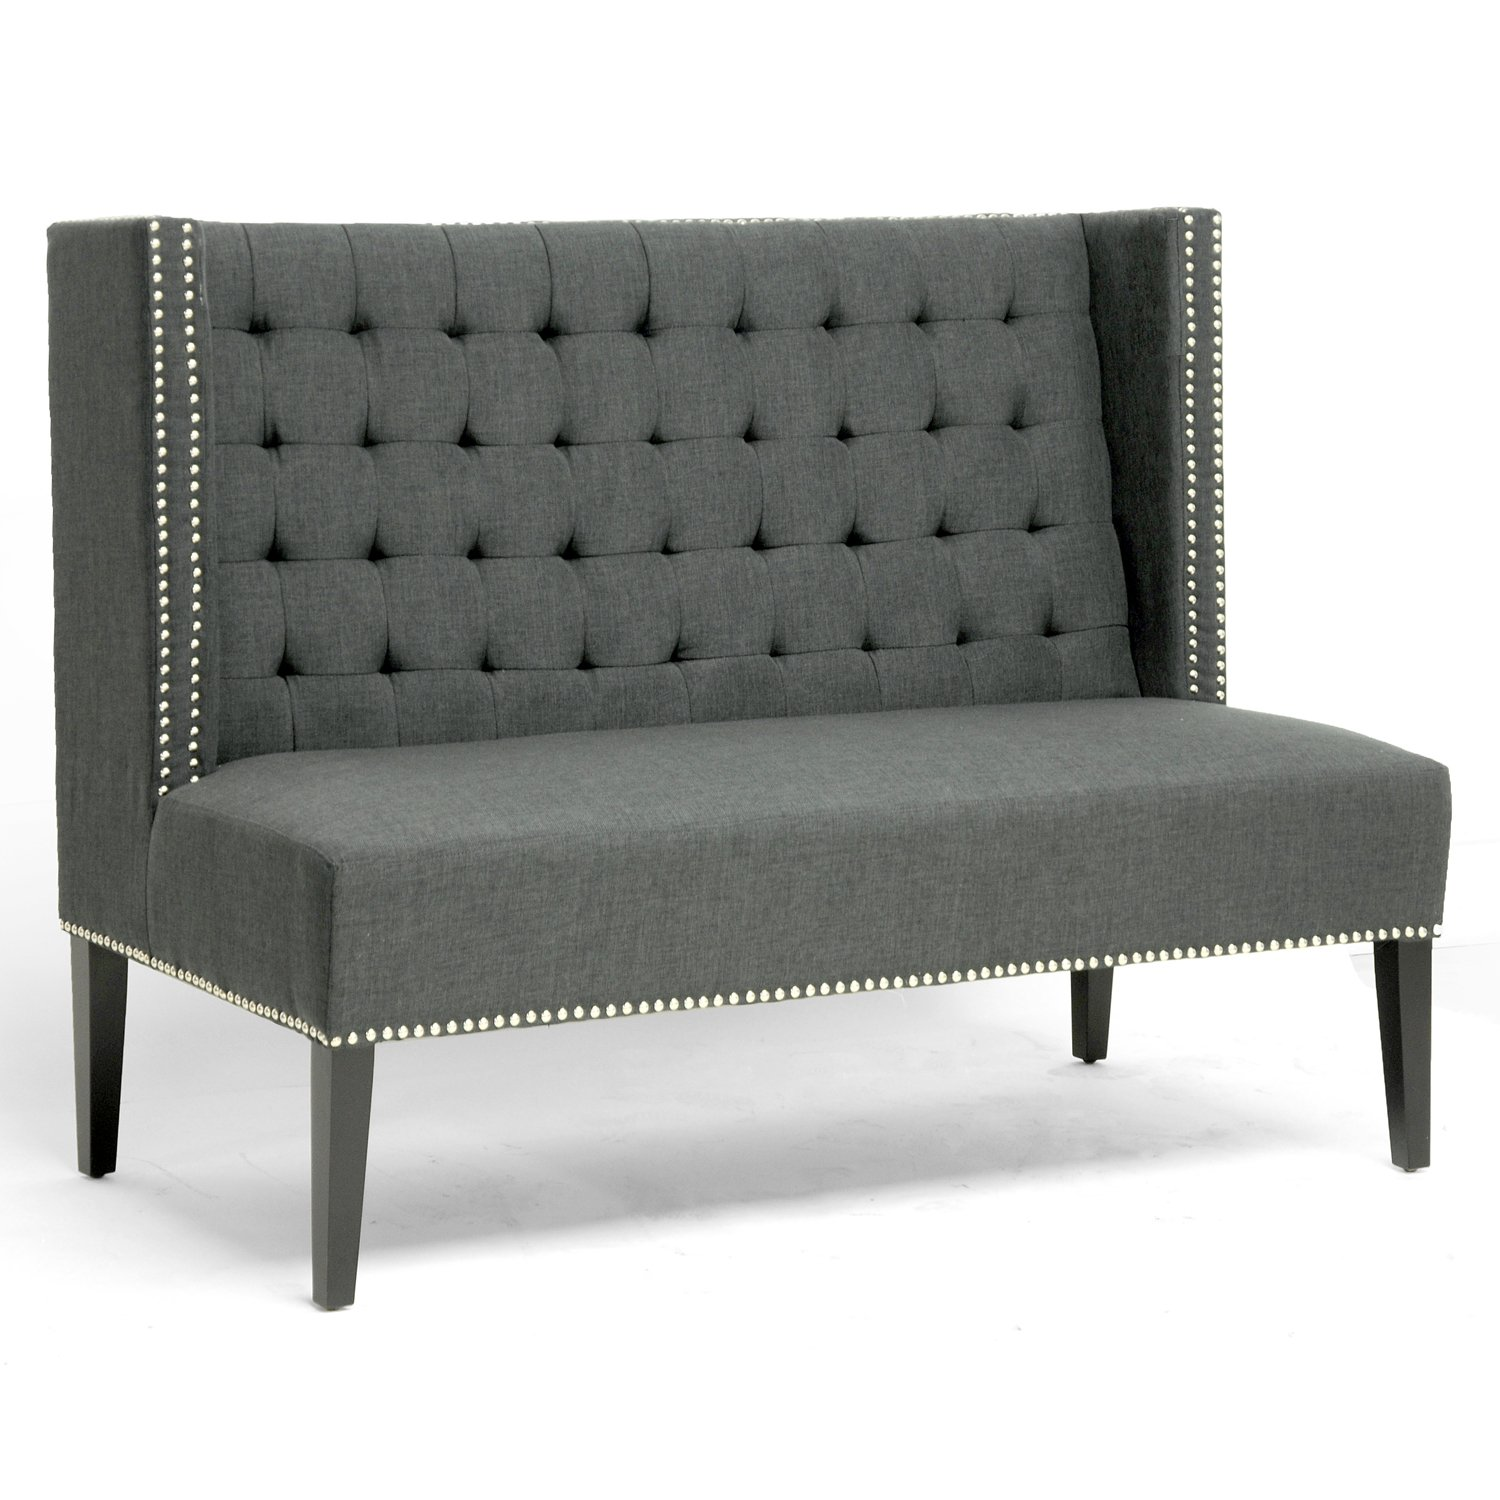 Amazon.com: Baxton Studio Owstynn Gray Linen Modern Banquette Bench:  Kitchen U0026 Dining